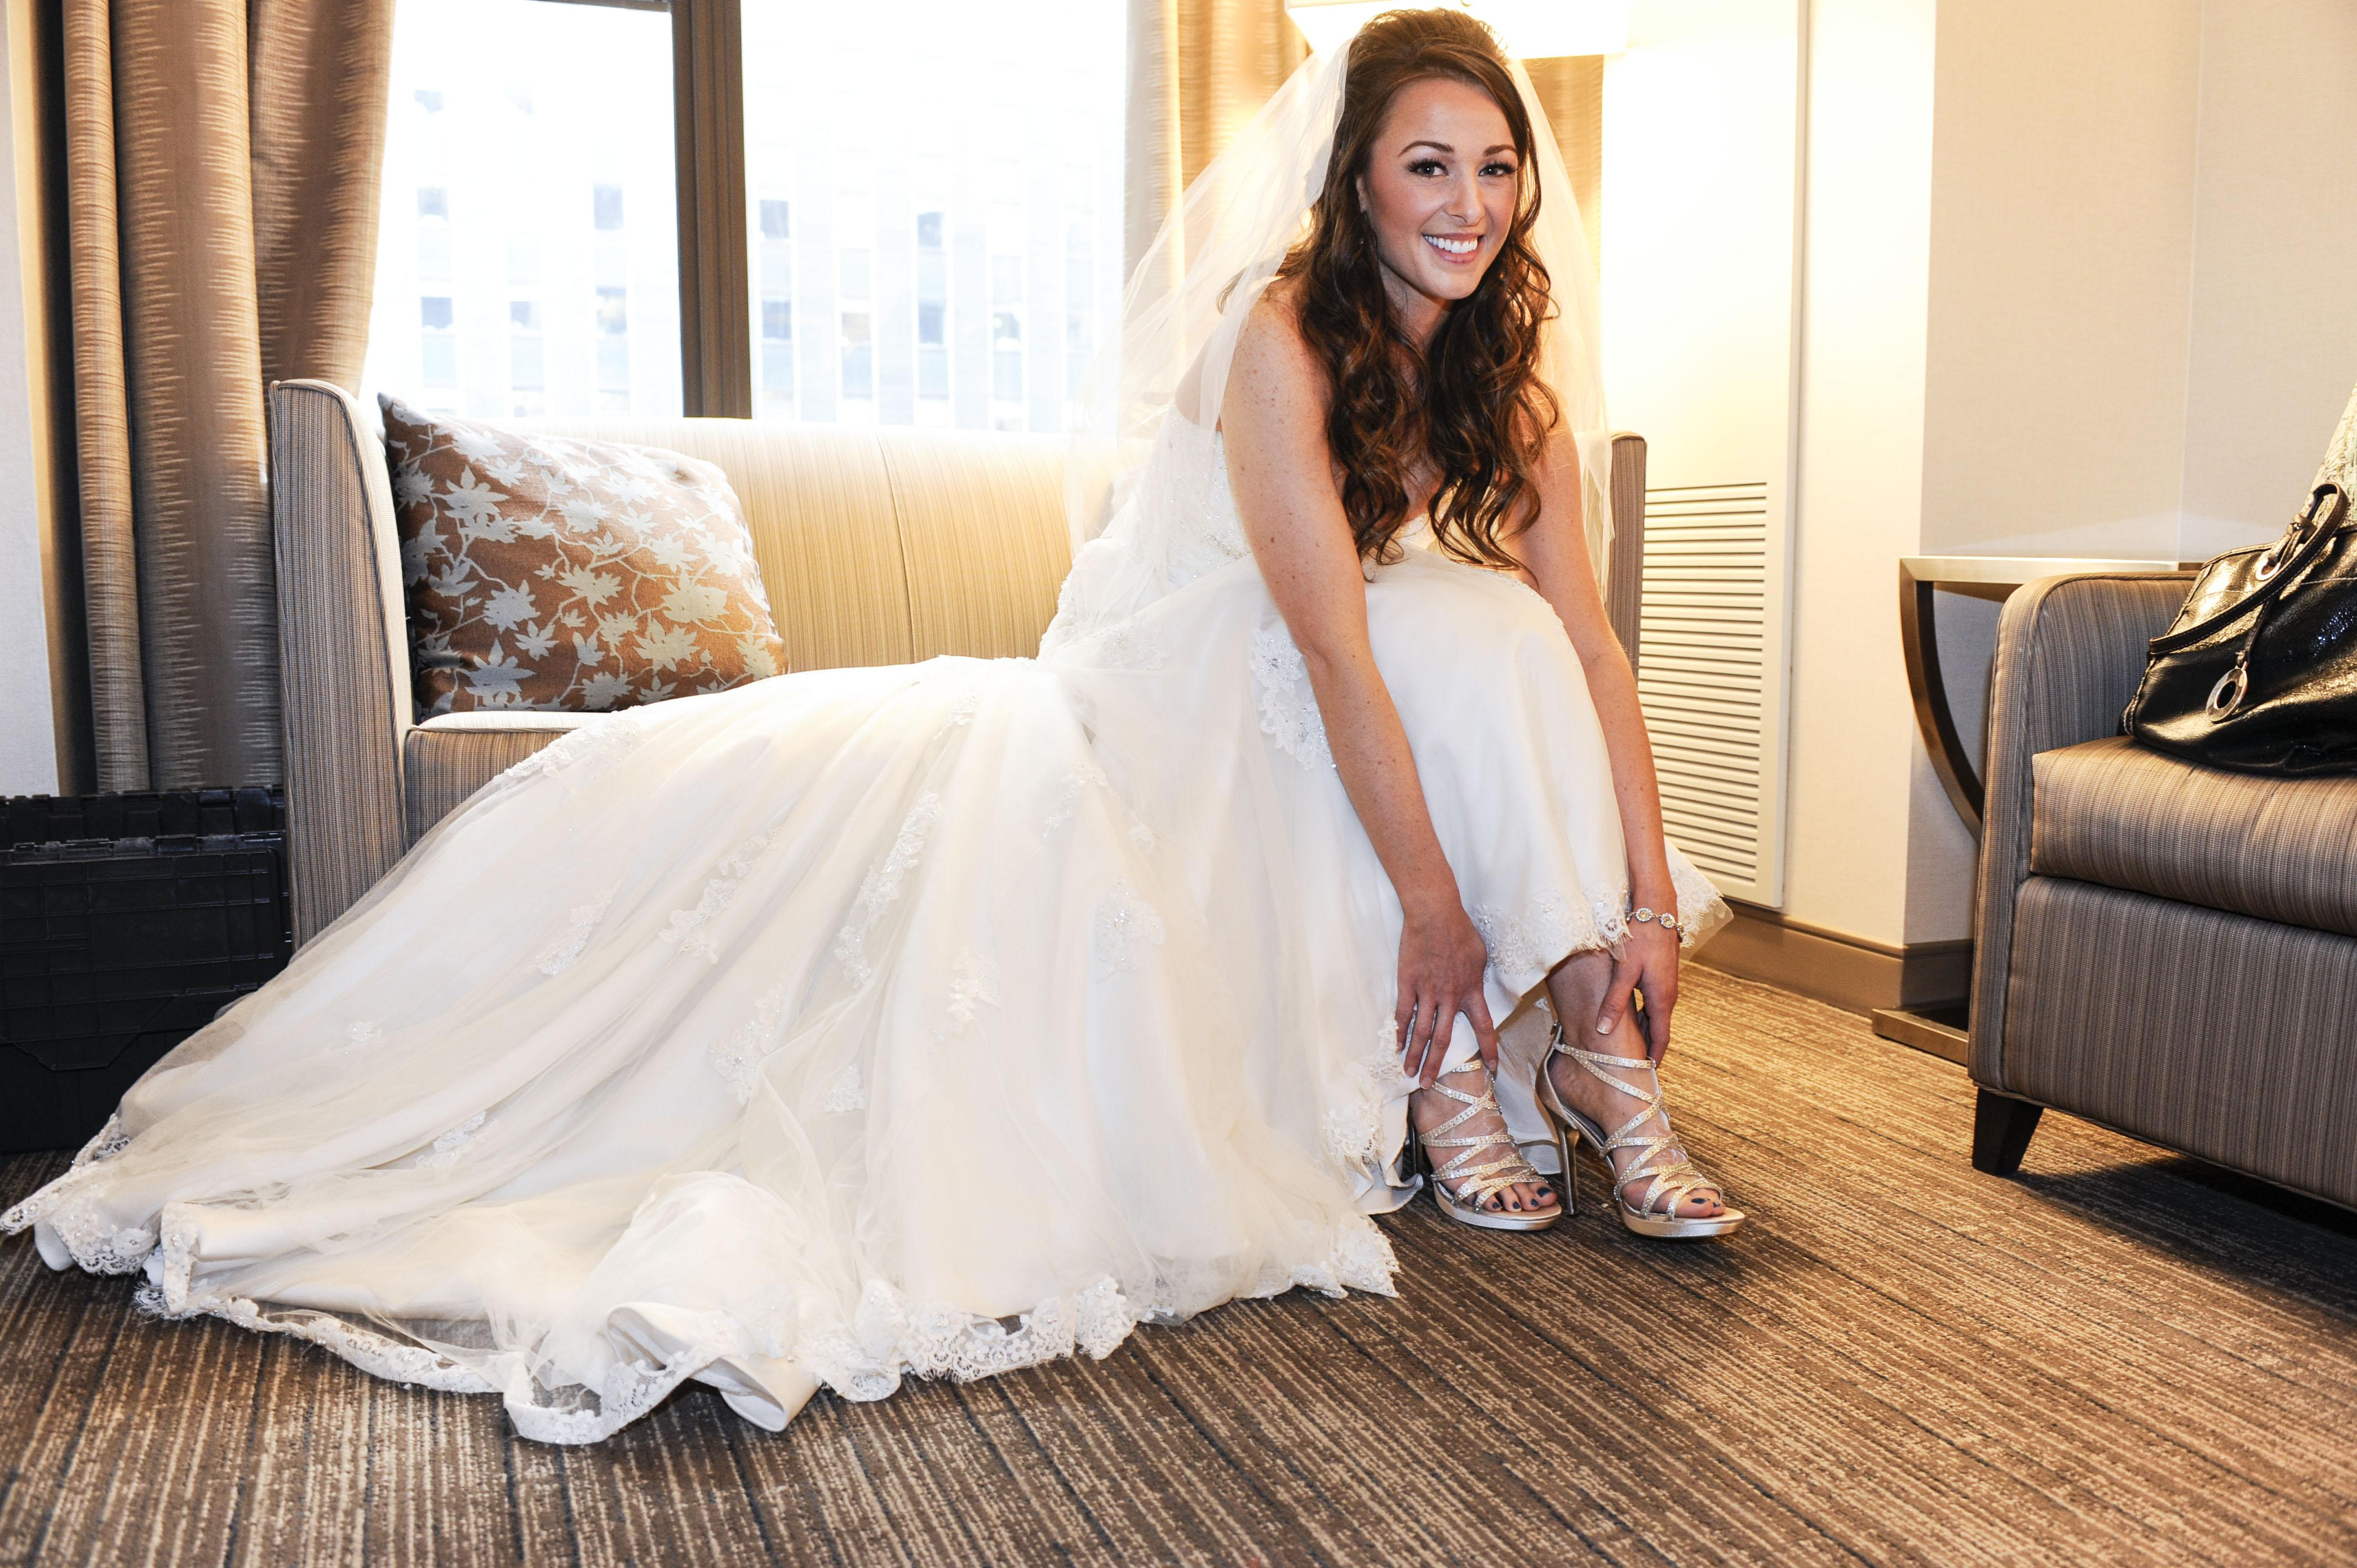 Married at First Sight Jaime Otis